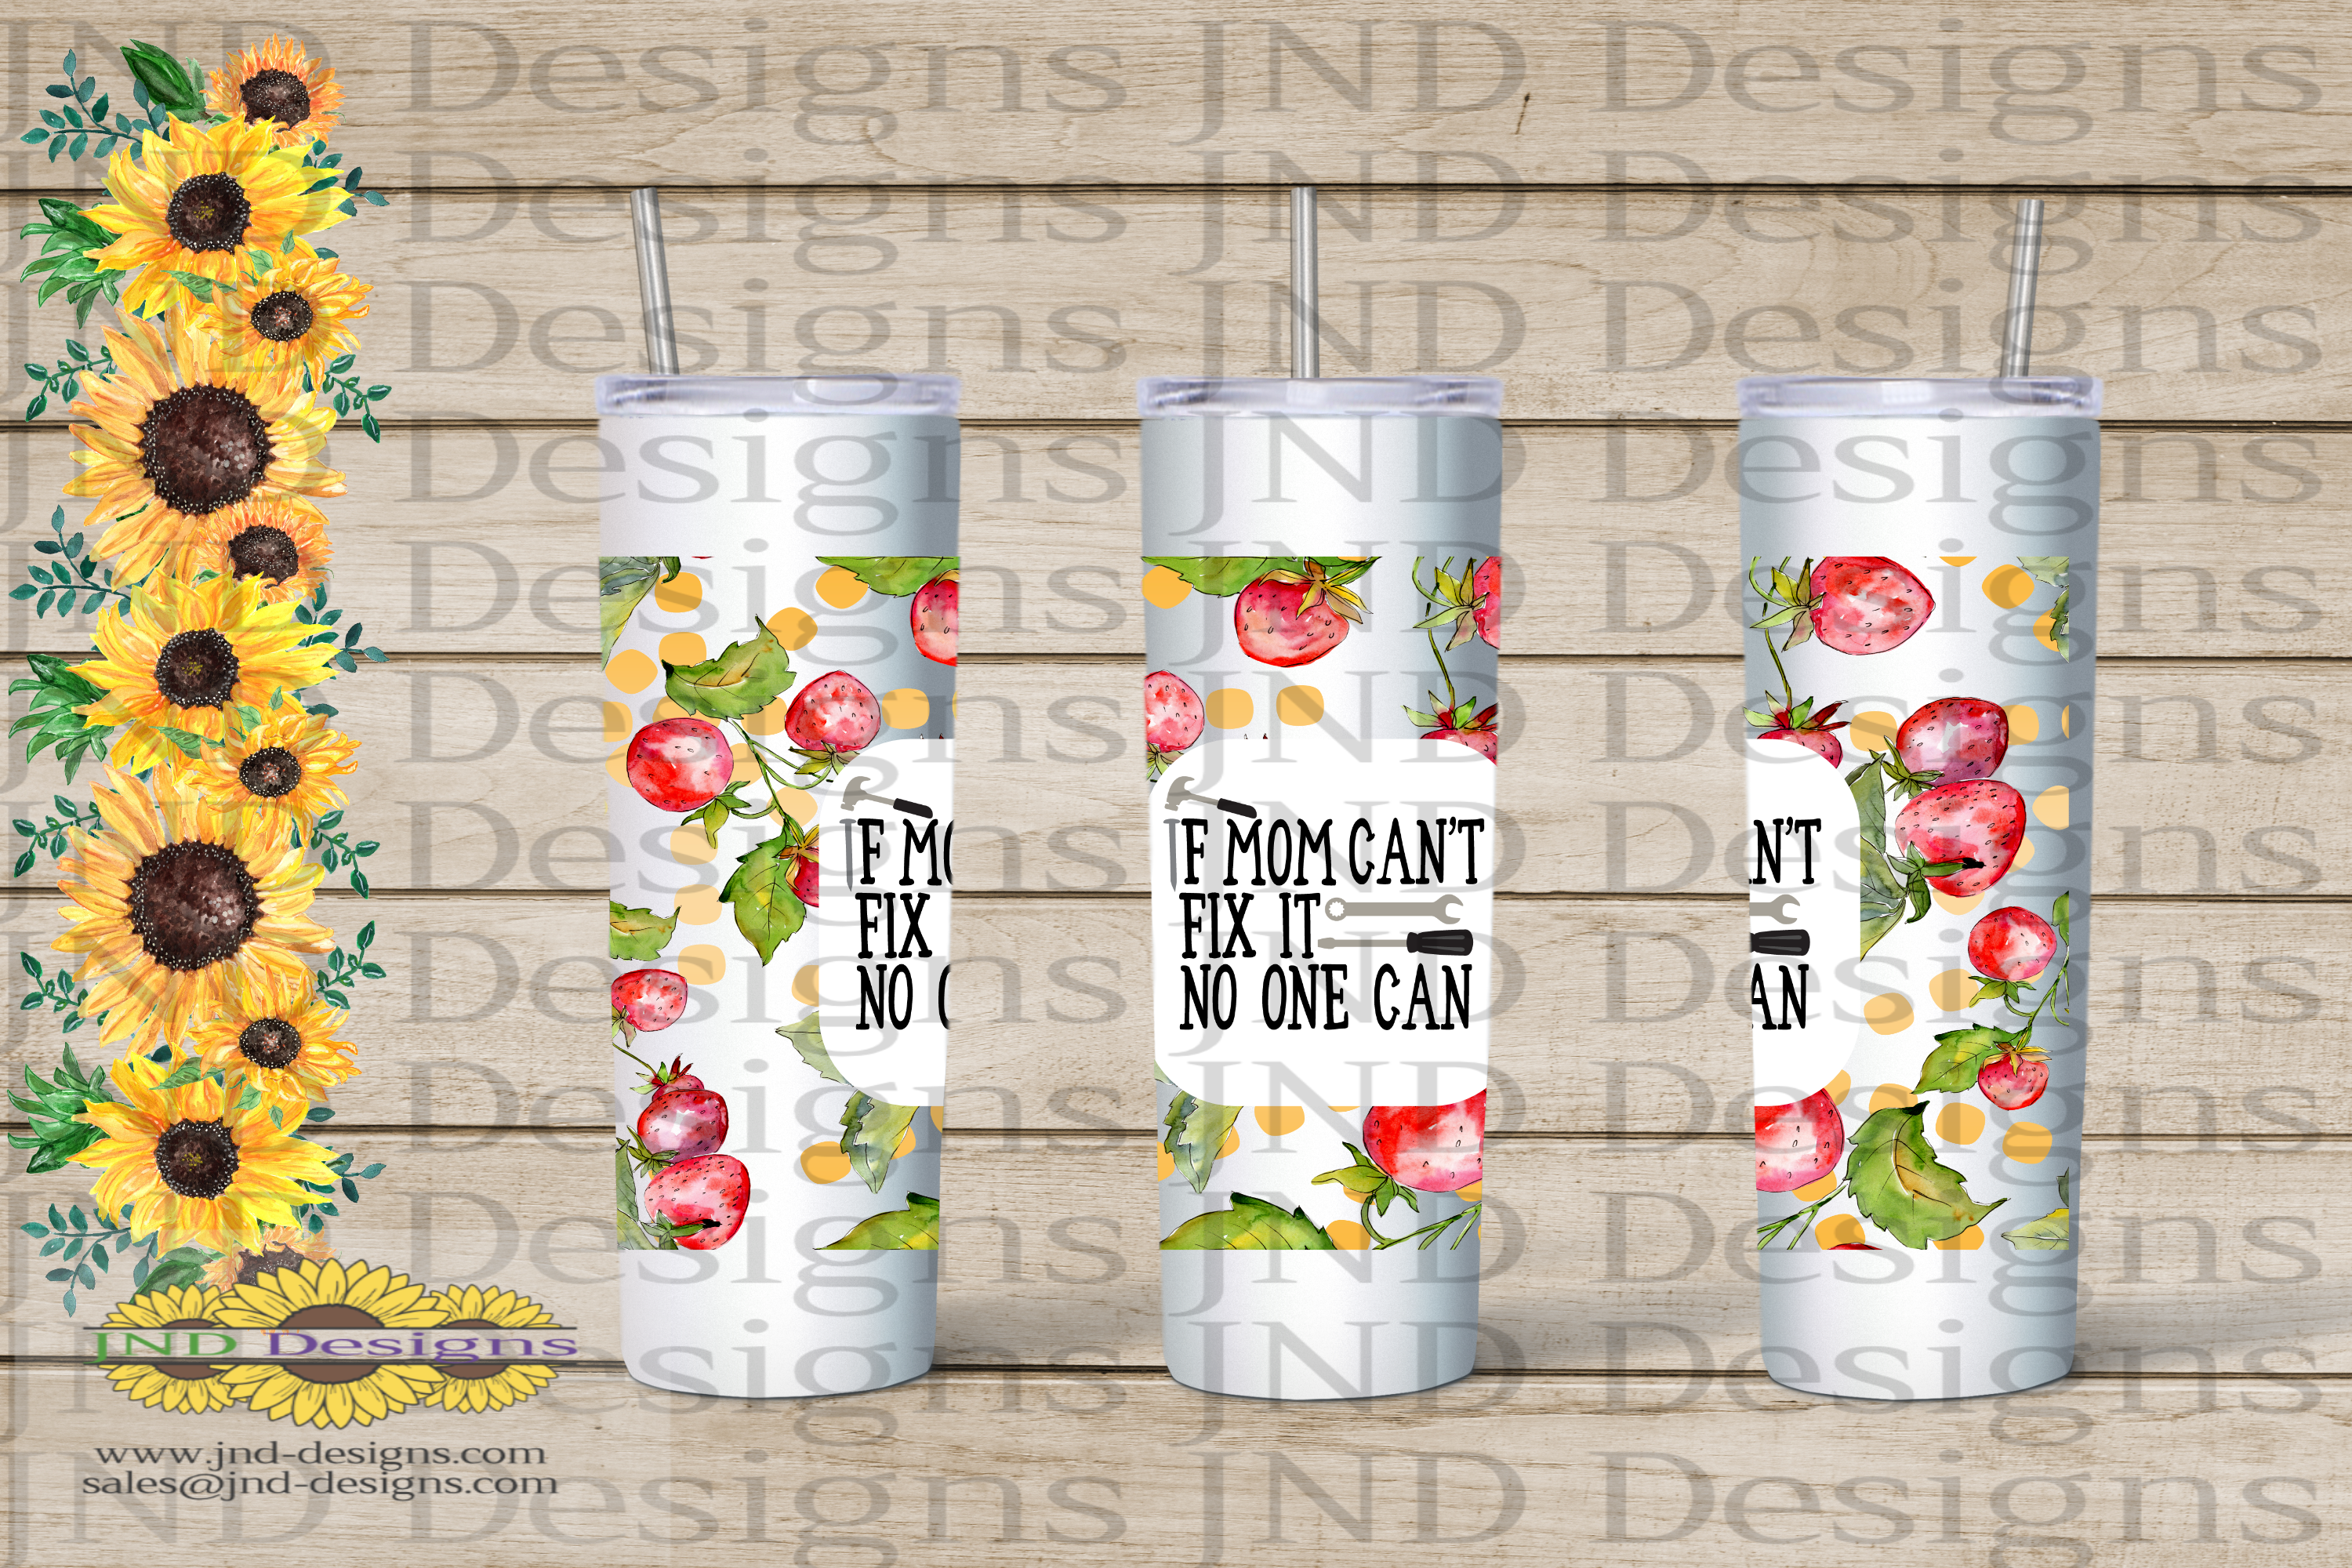 20 ounce Strawberry Fixit